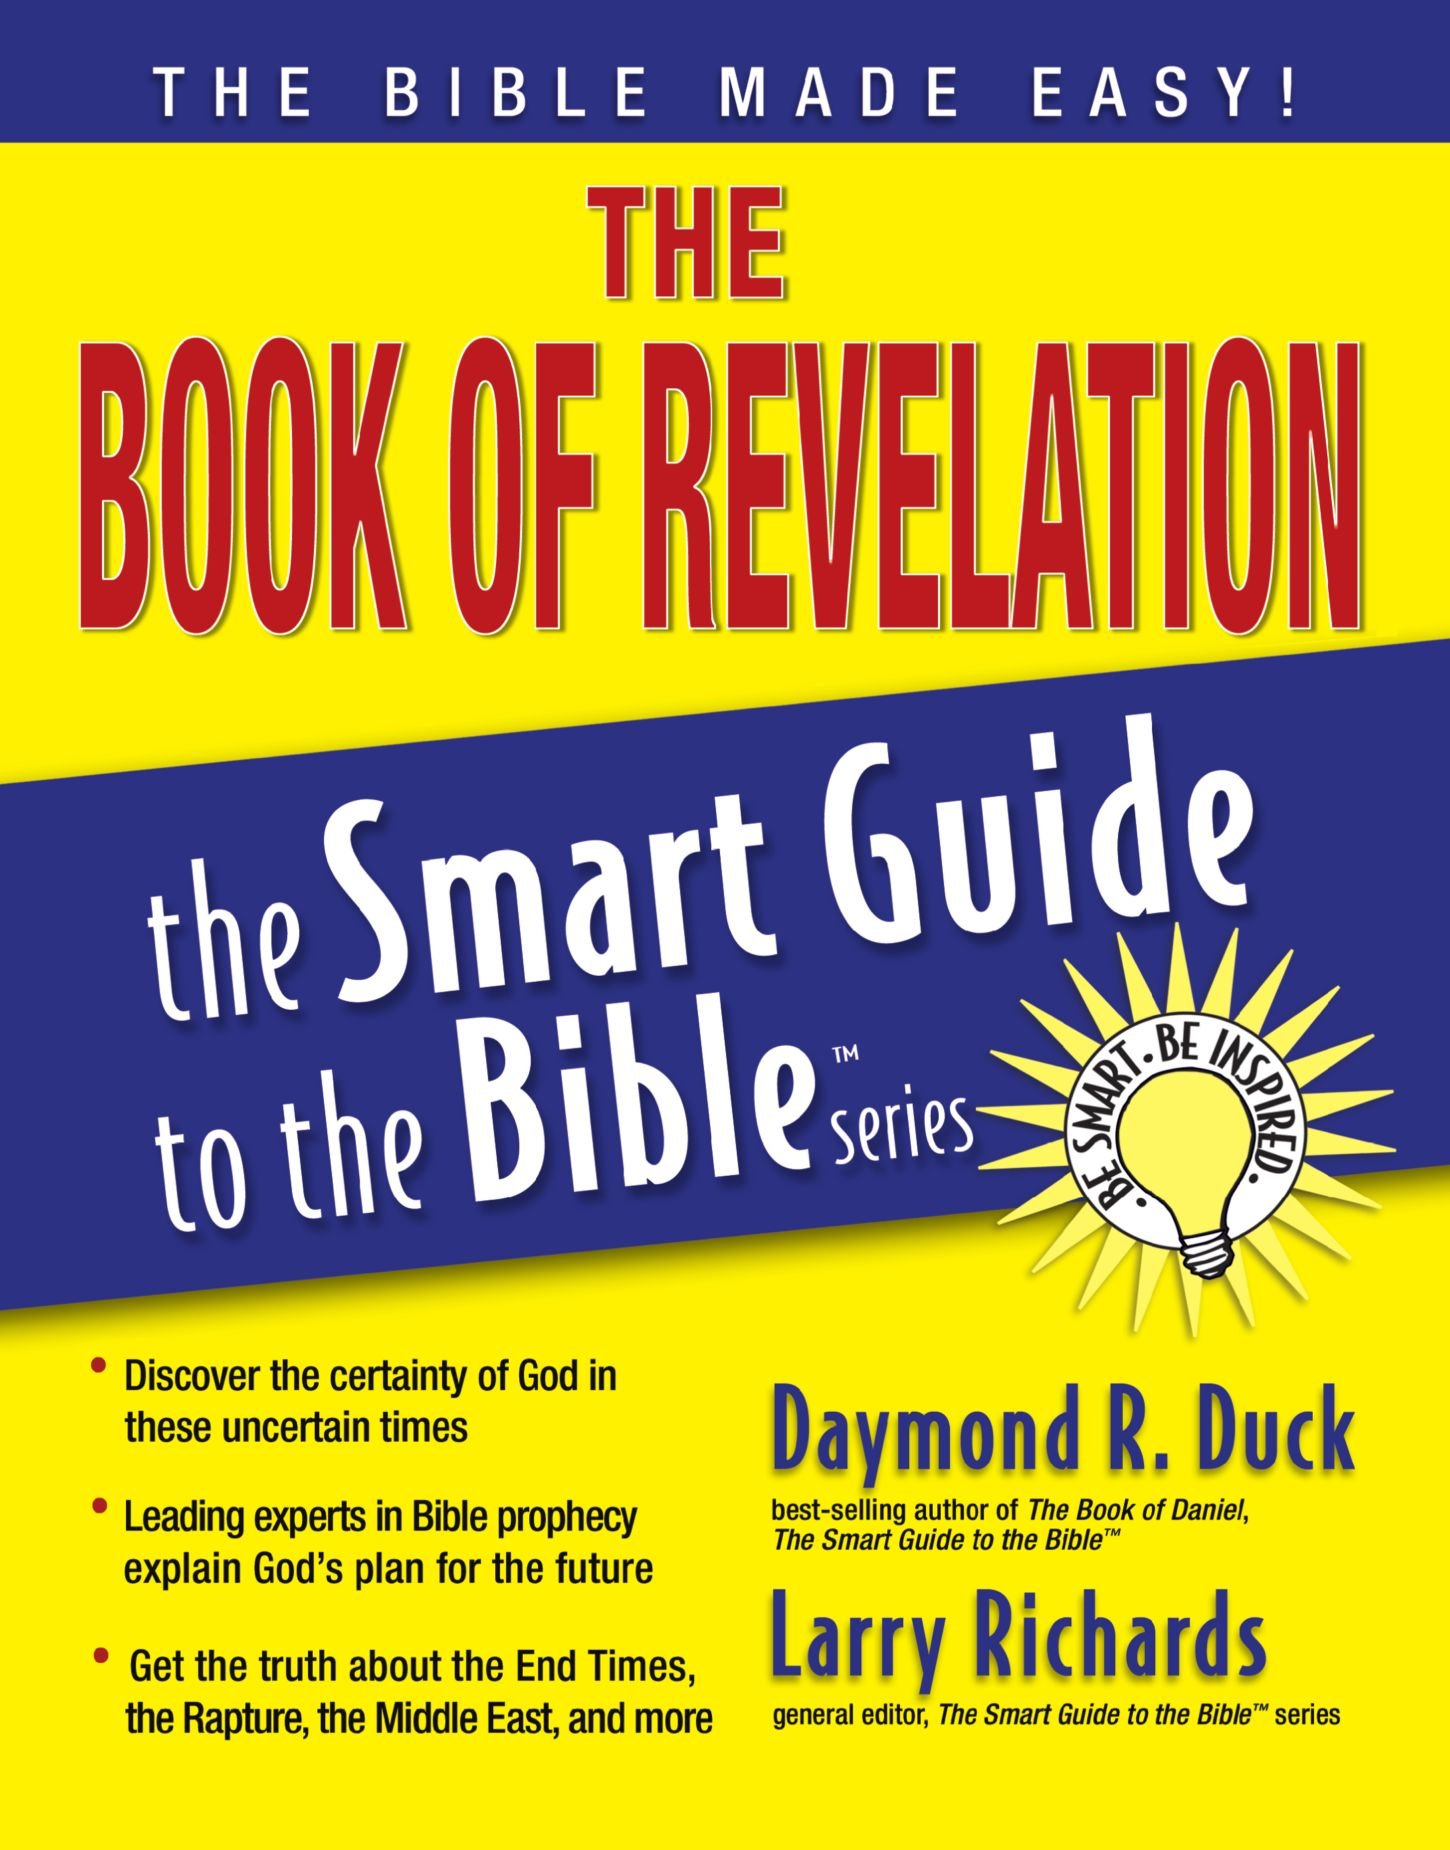 Book Revelation Smart Guide Bible product image